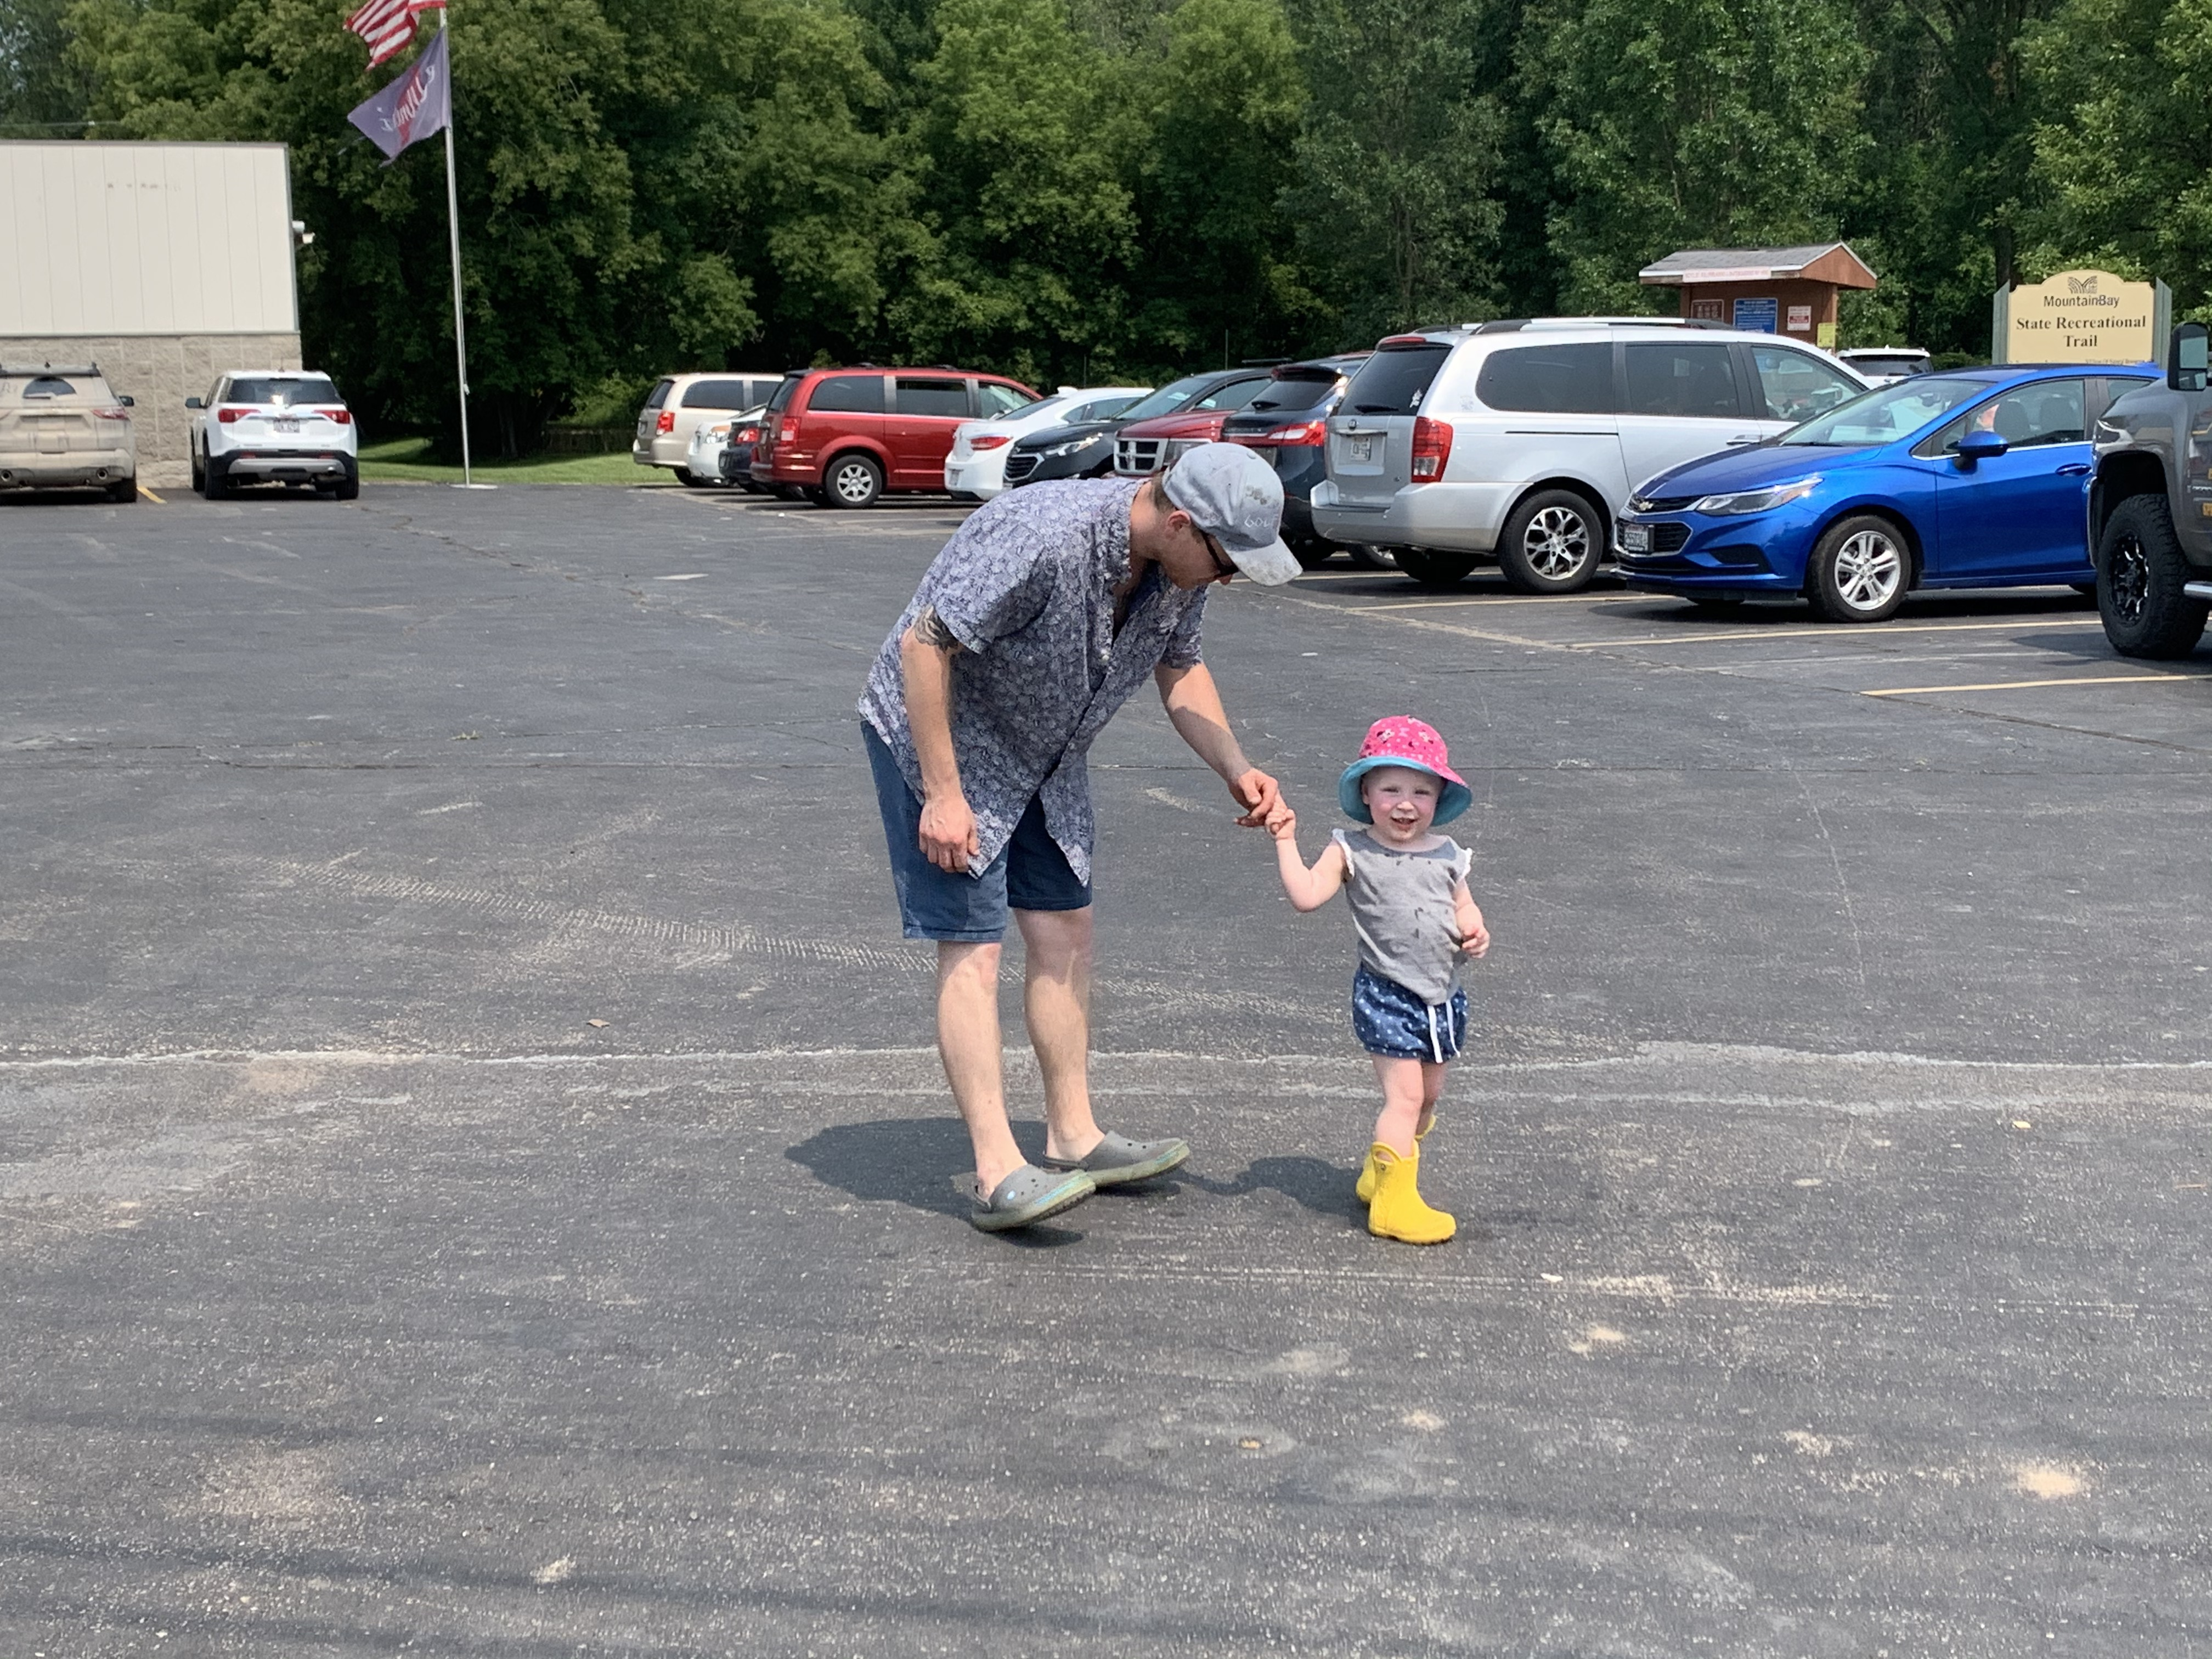 Ellie VanDamn is all smiles as she dances with her father, Codes, in parking lot off of Pulaski Street on July 18. The VanDamn's were excited to see the parade as they live in Pulaski.Luke Reimer   NEW Media